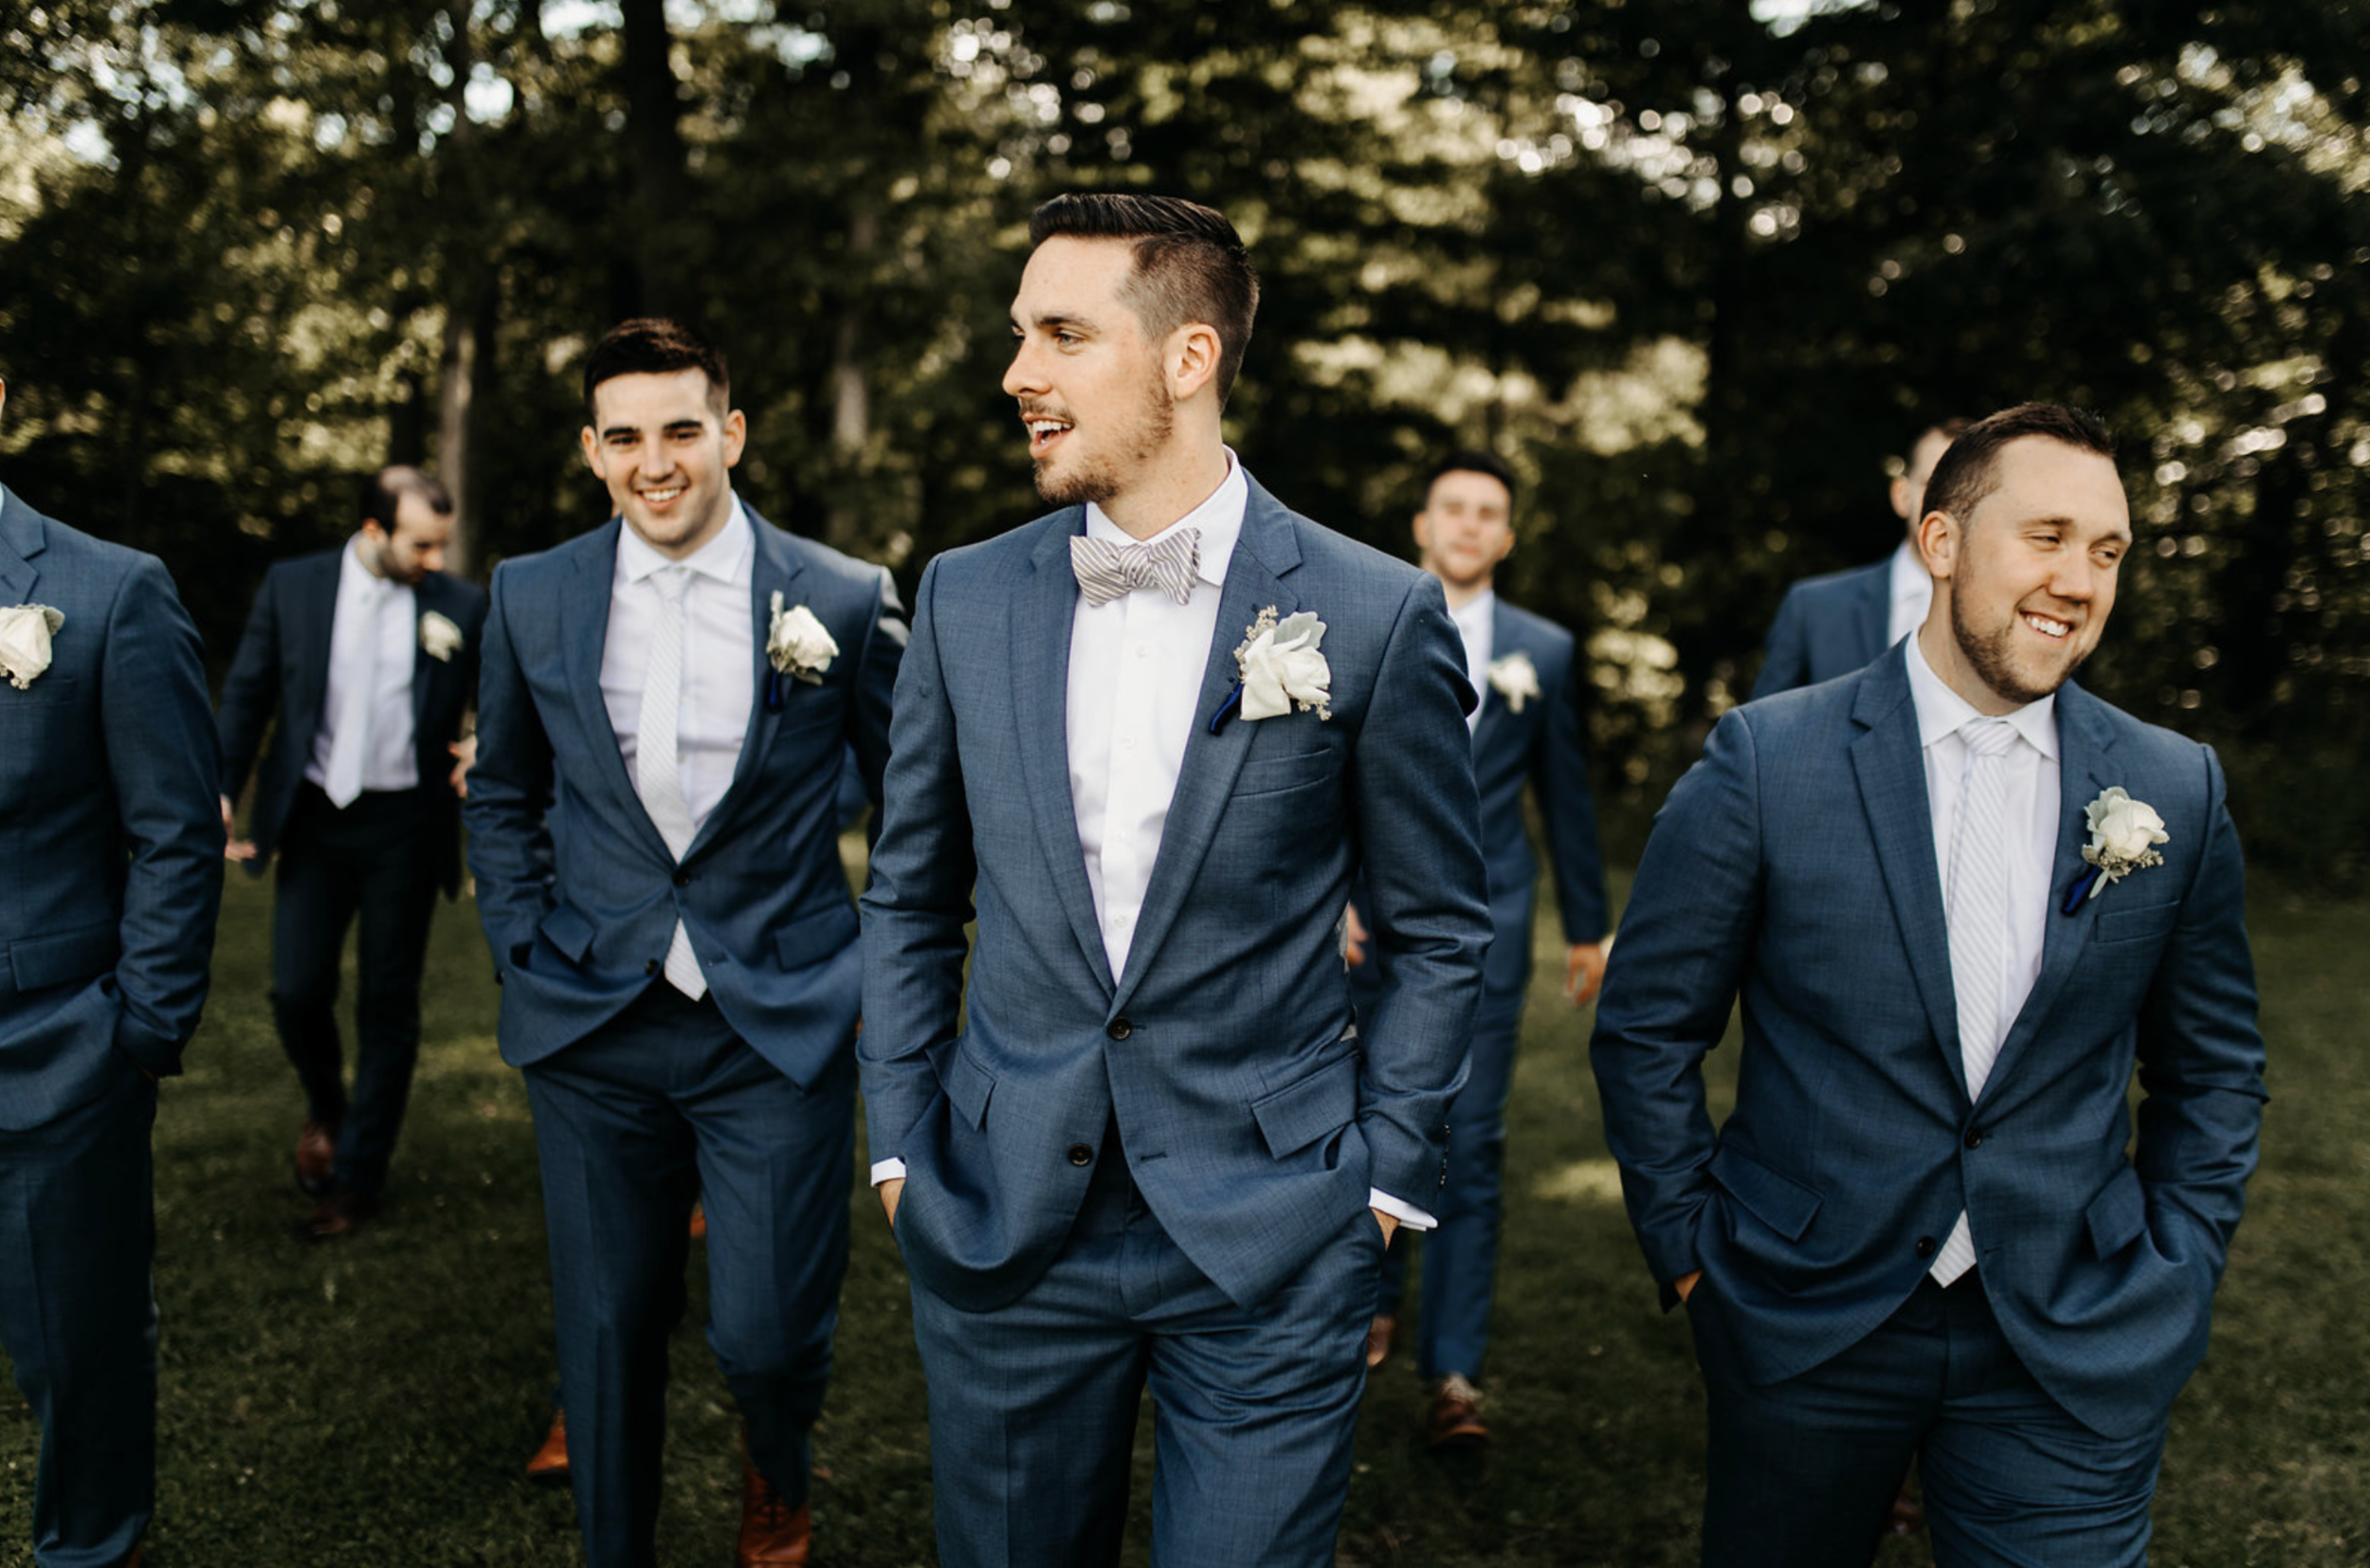 Valerie-and-TJ-McConnell-Wedding-Coordination-by-Cassandra-Clair-Event-Prep-Pittsburgh-Wedding-41.png